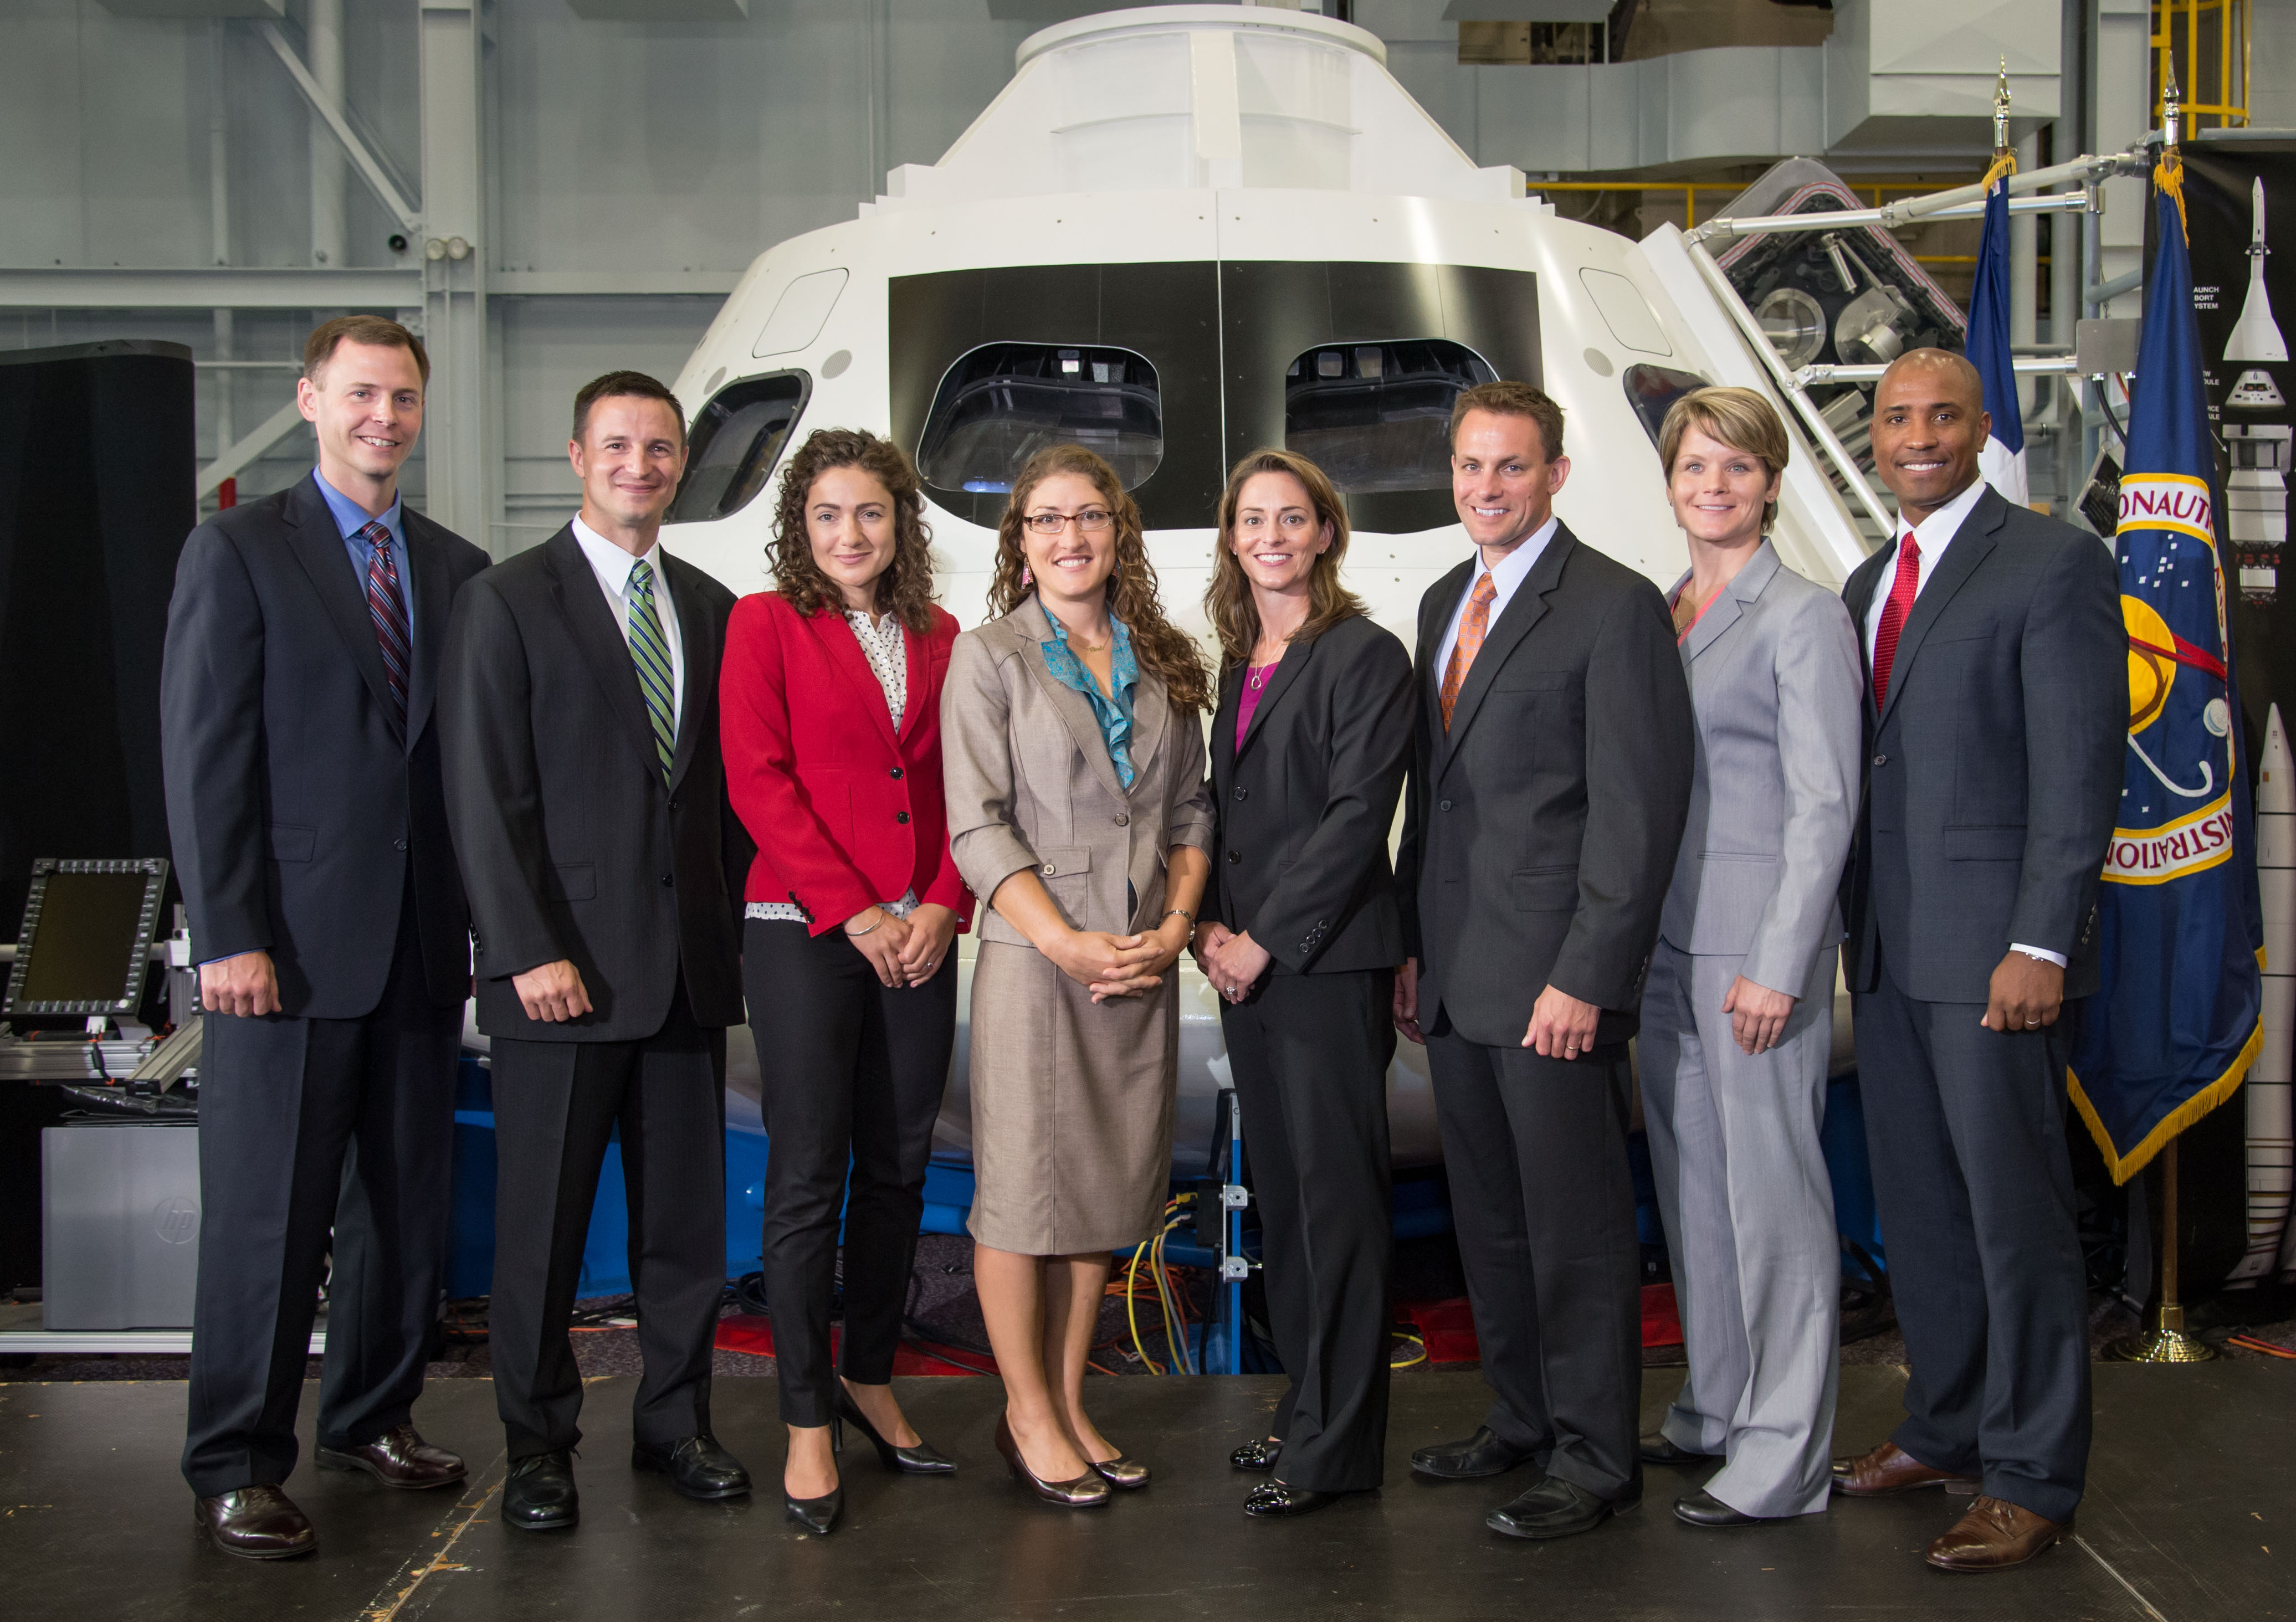 For the first time, in 2013, NASA selected an equal number of men and women candidates.